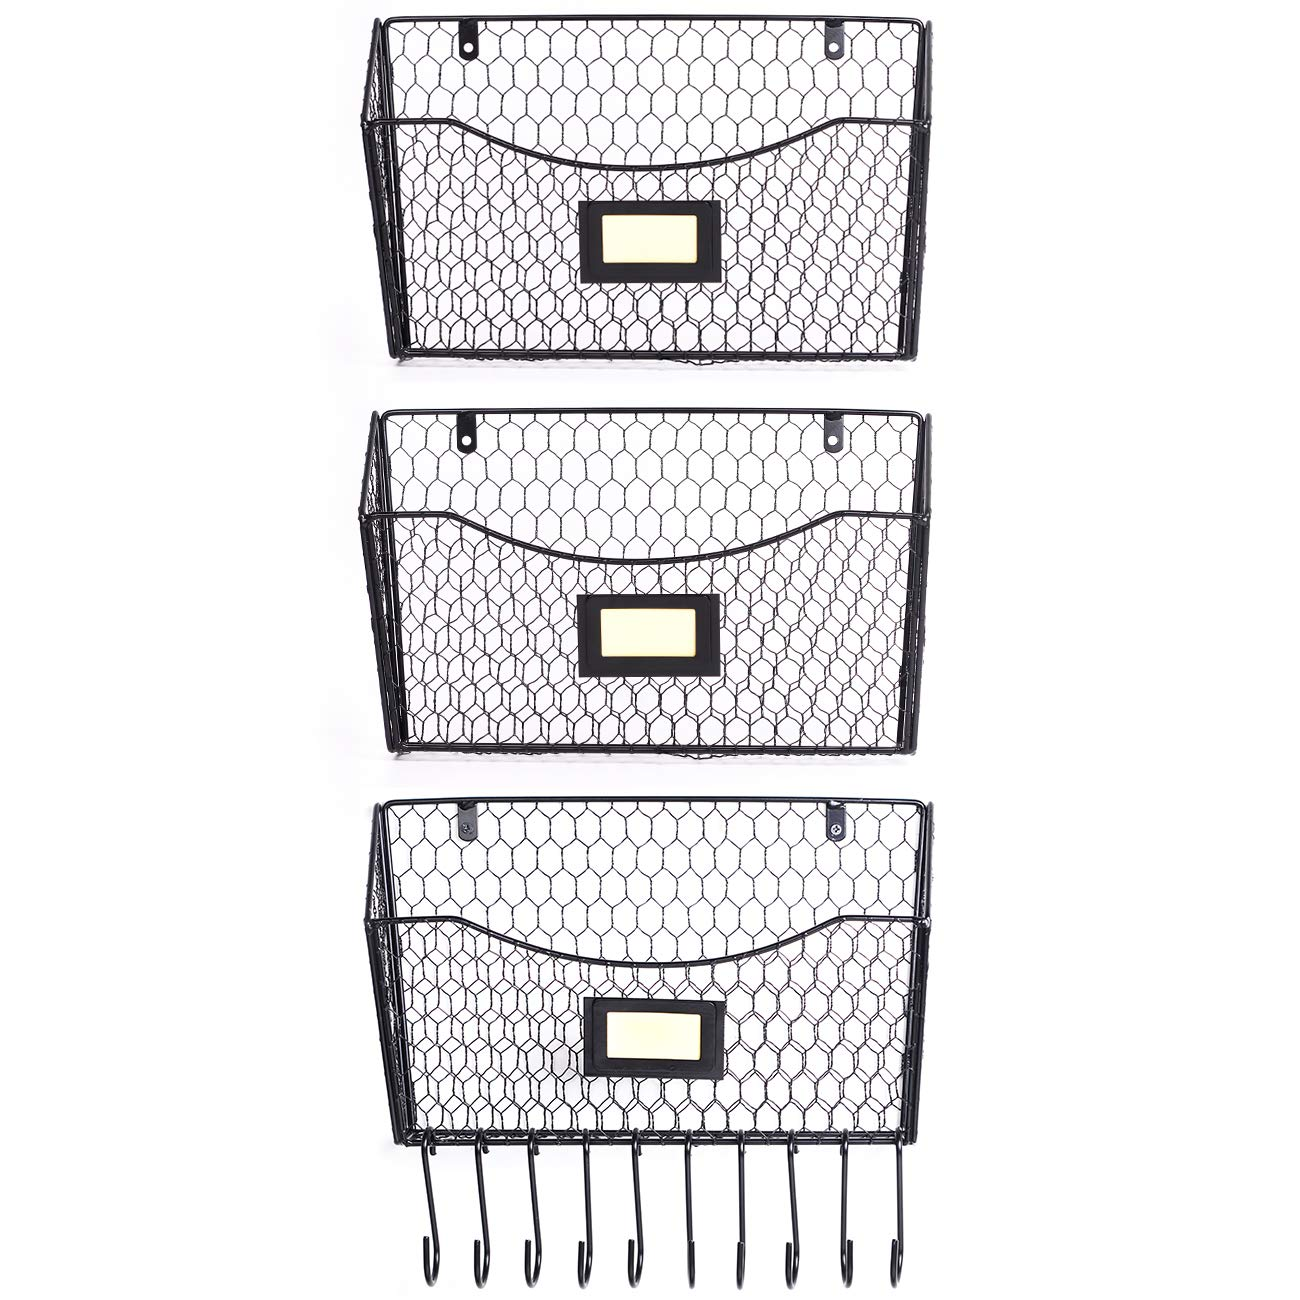 3 Pack Wall Mounted File Holder Hanging Mesh Metal Basket Wire Magazine Rack Shelf with 10 Accessory Hooks Name Tag Slot(Black)